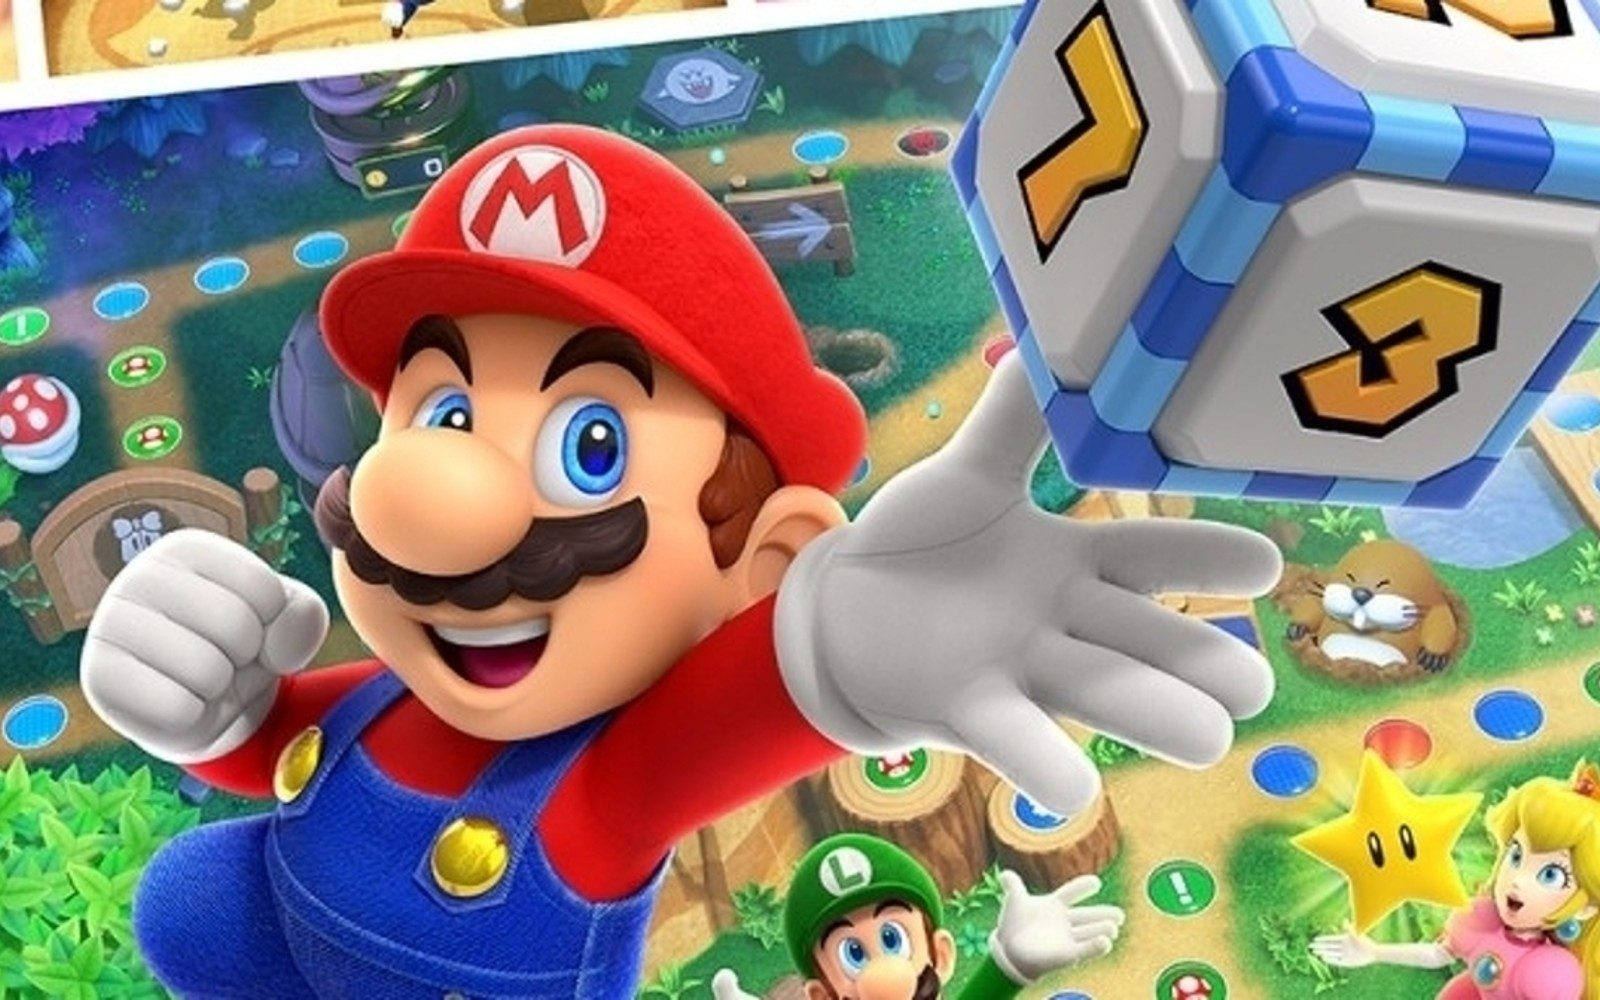 E3 2021: Mario Party Superstars to Feature Classic Maps and Online Play